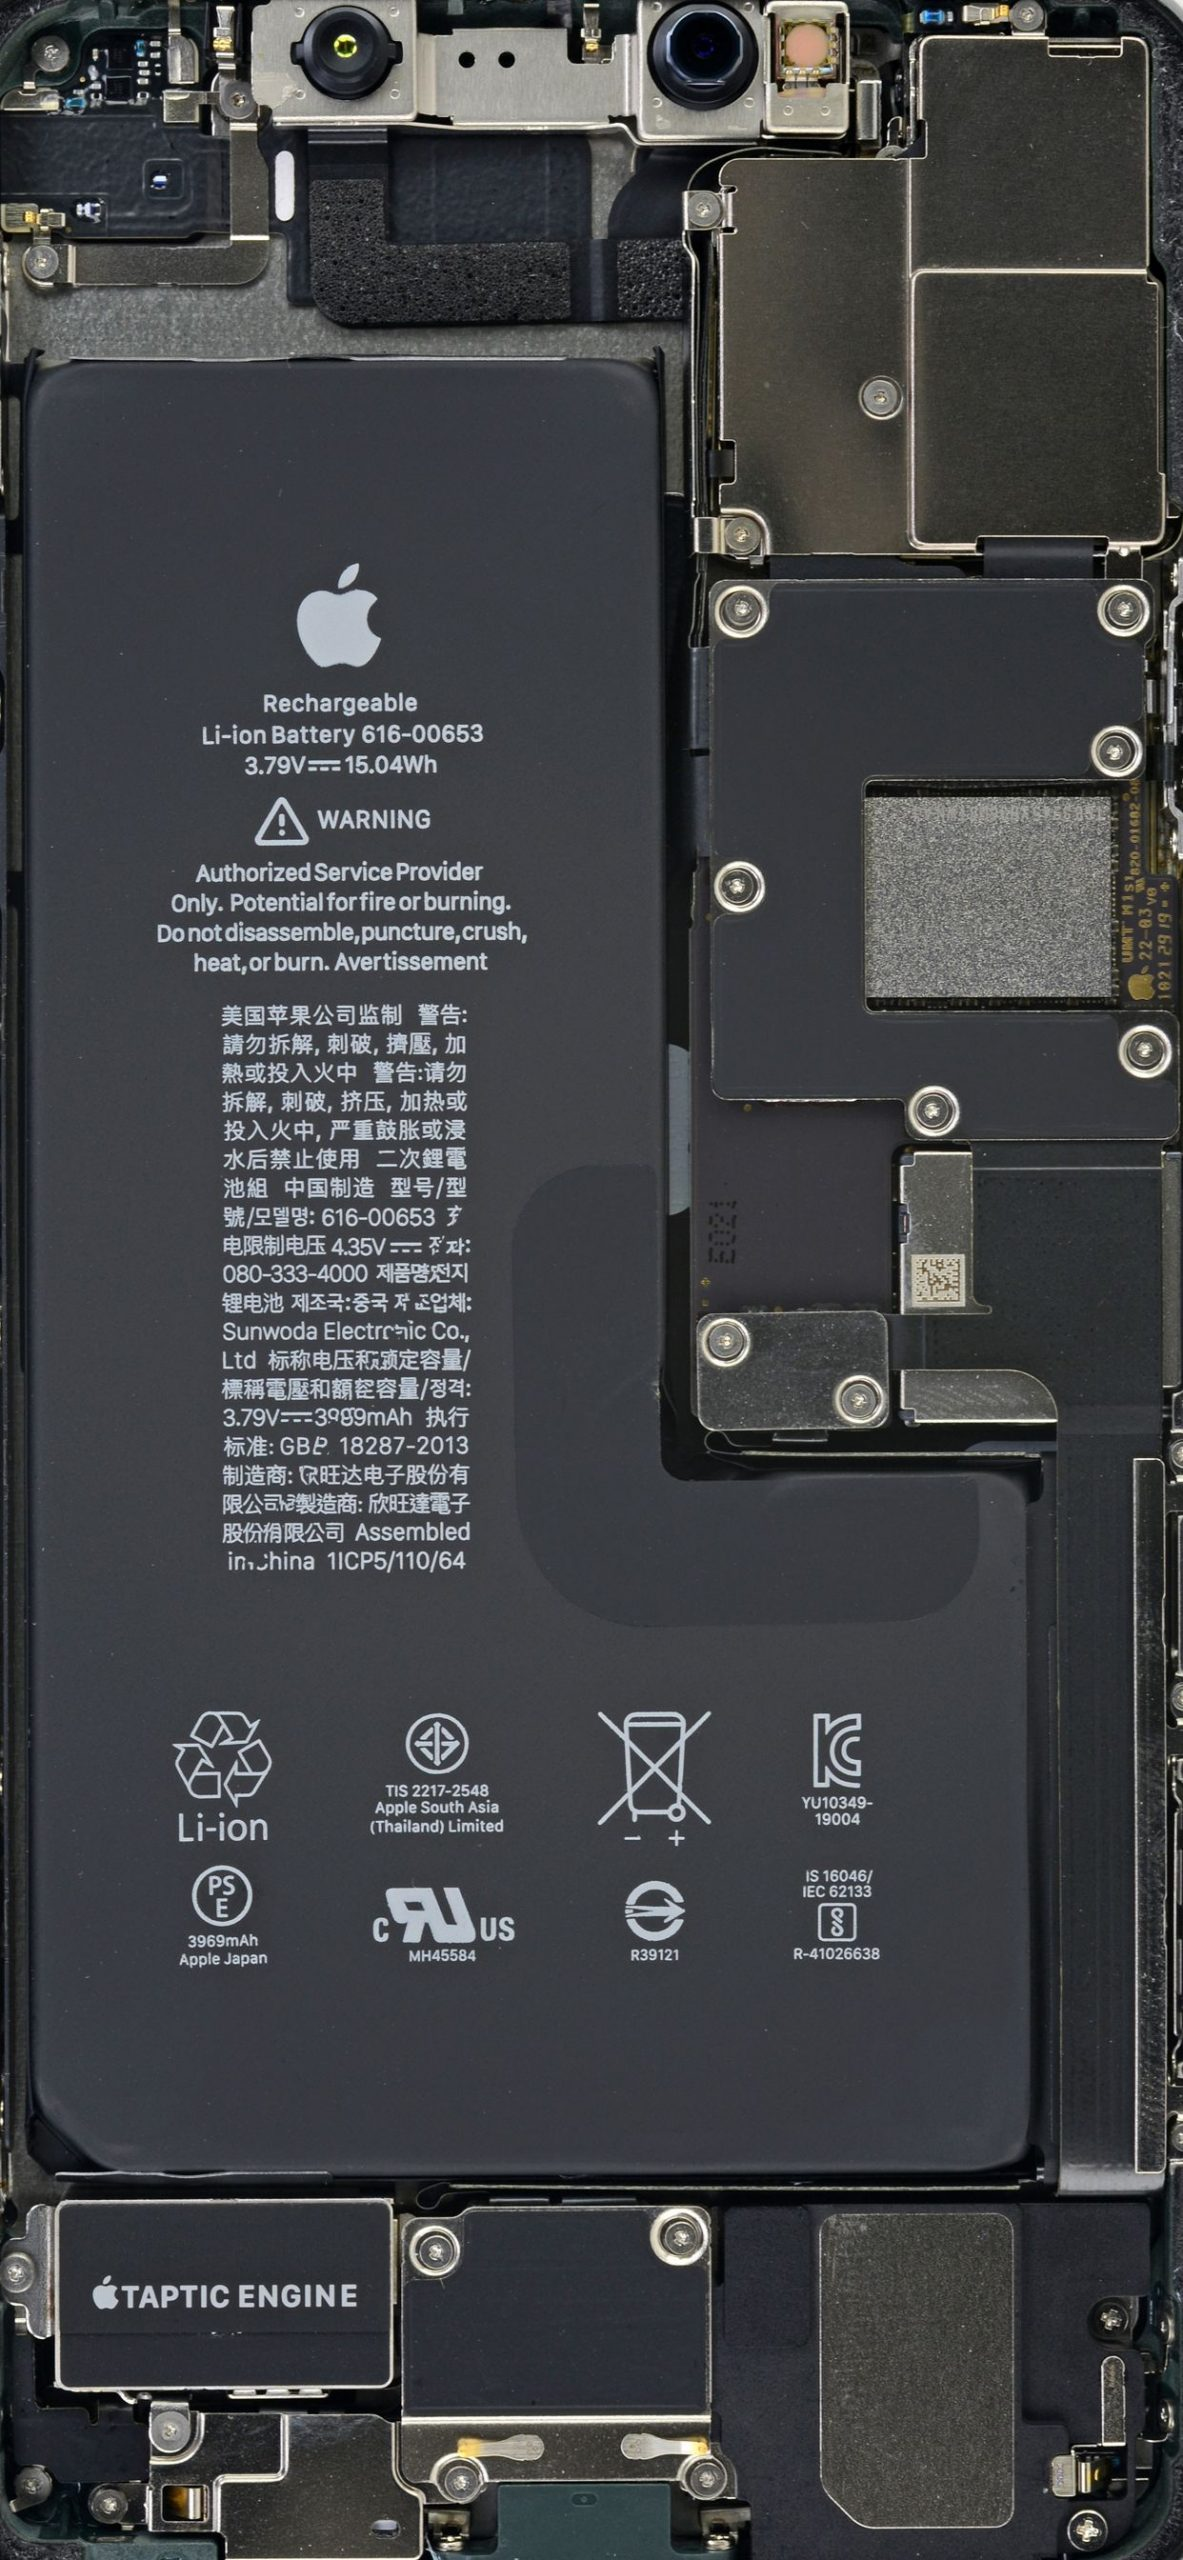 iPhone 11 11 Pro and 11 Pro Max Teardown Wallpapers